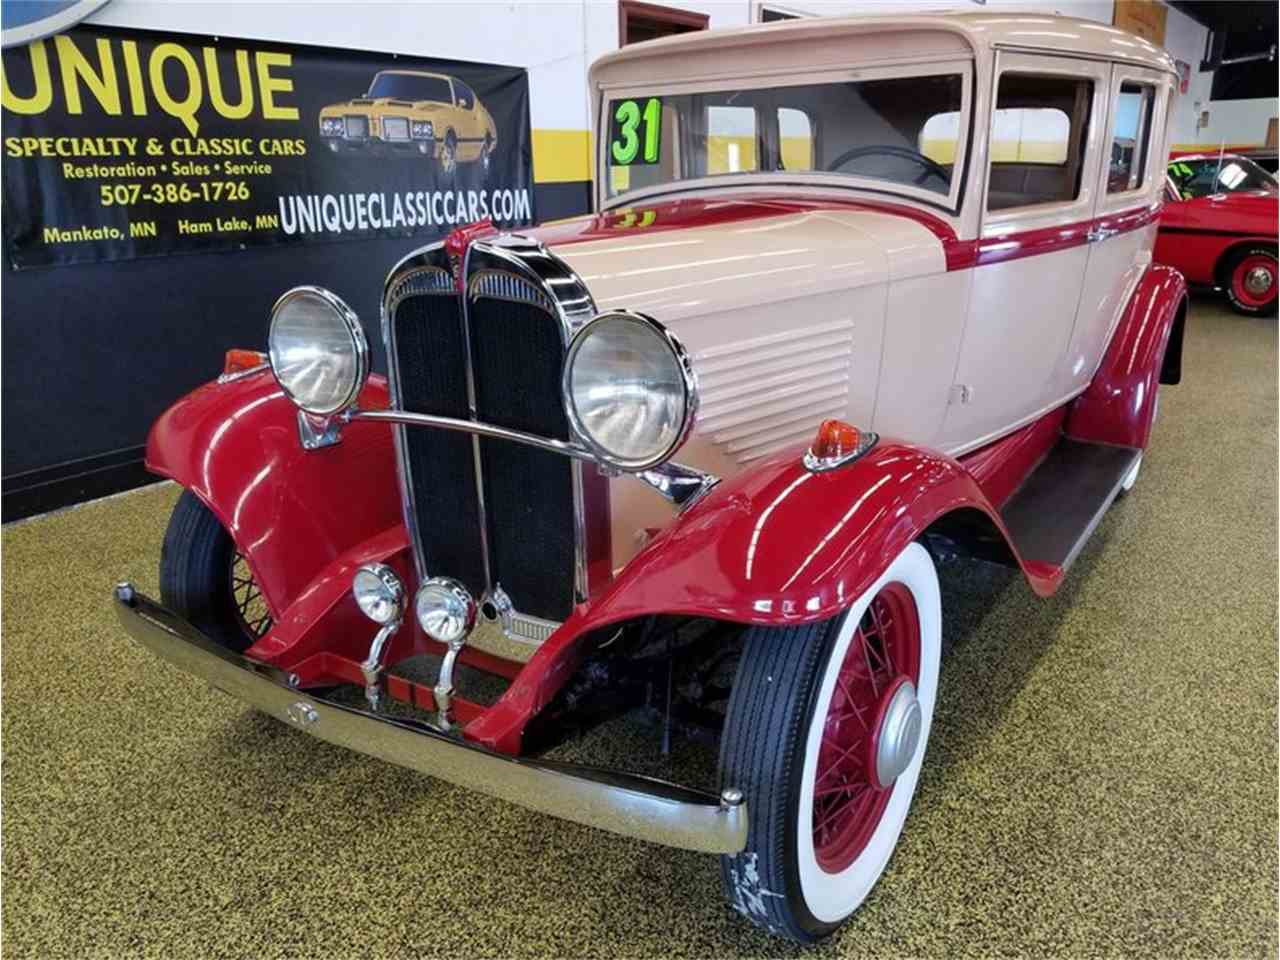 1931 Willys-Overland Jeepster for Sale   ClassicCars.com   CC-1027045